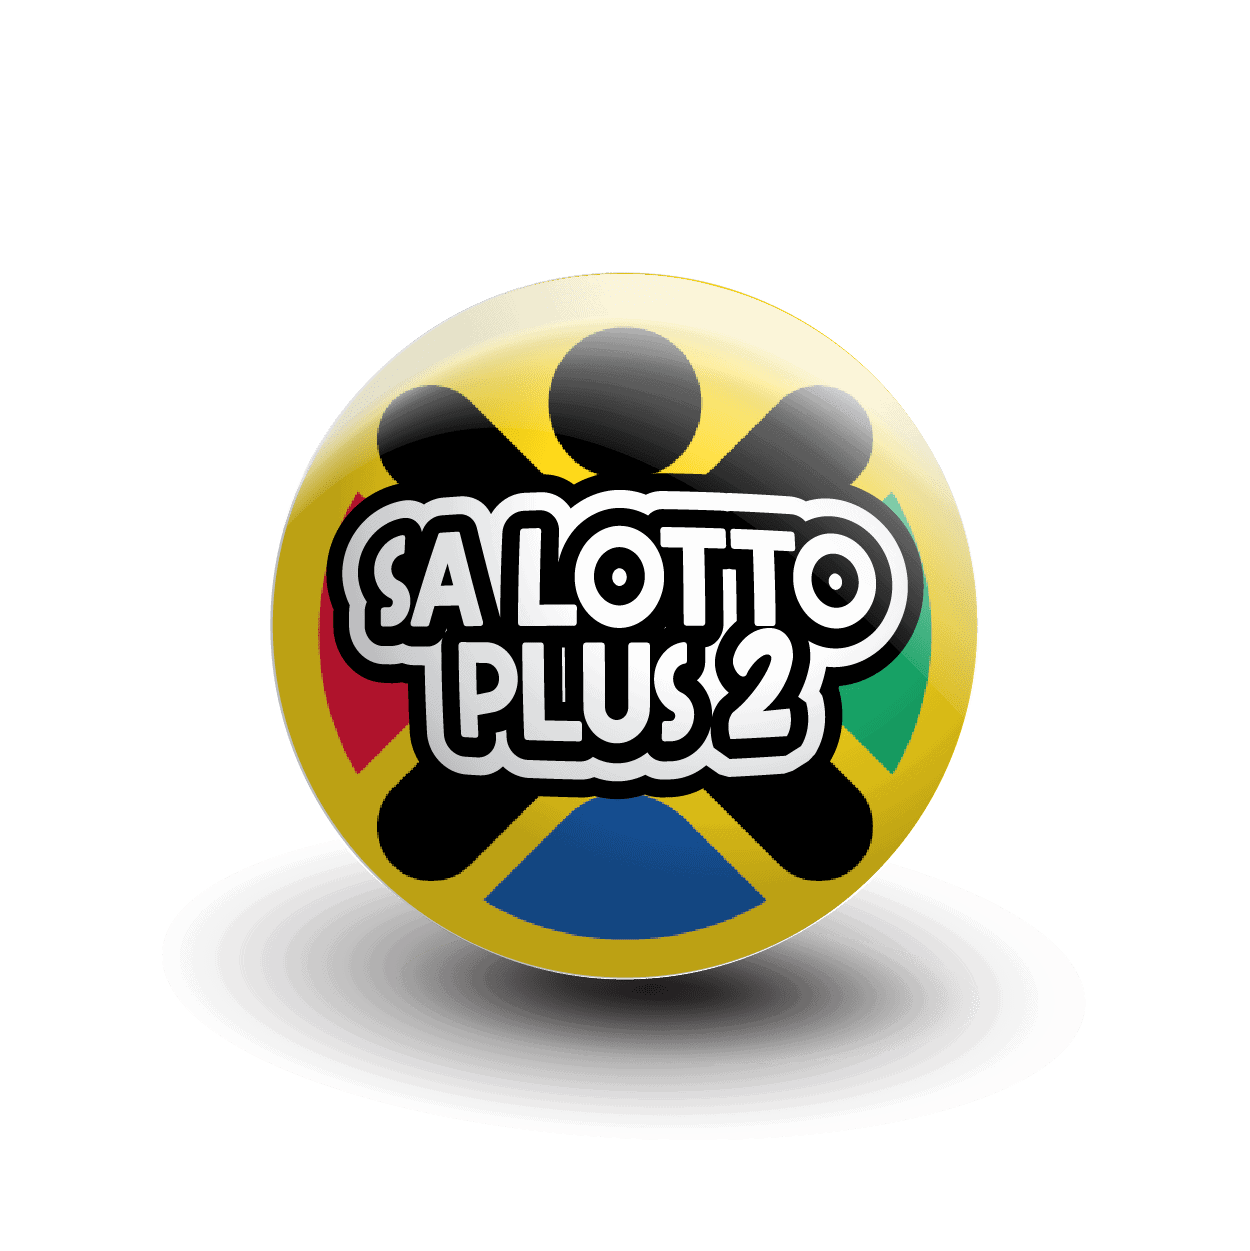 sa lotto plus 2